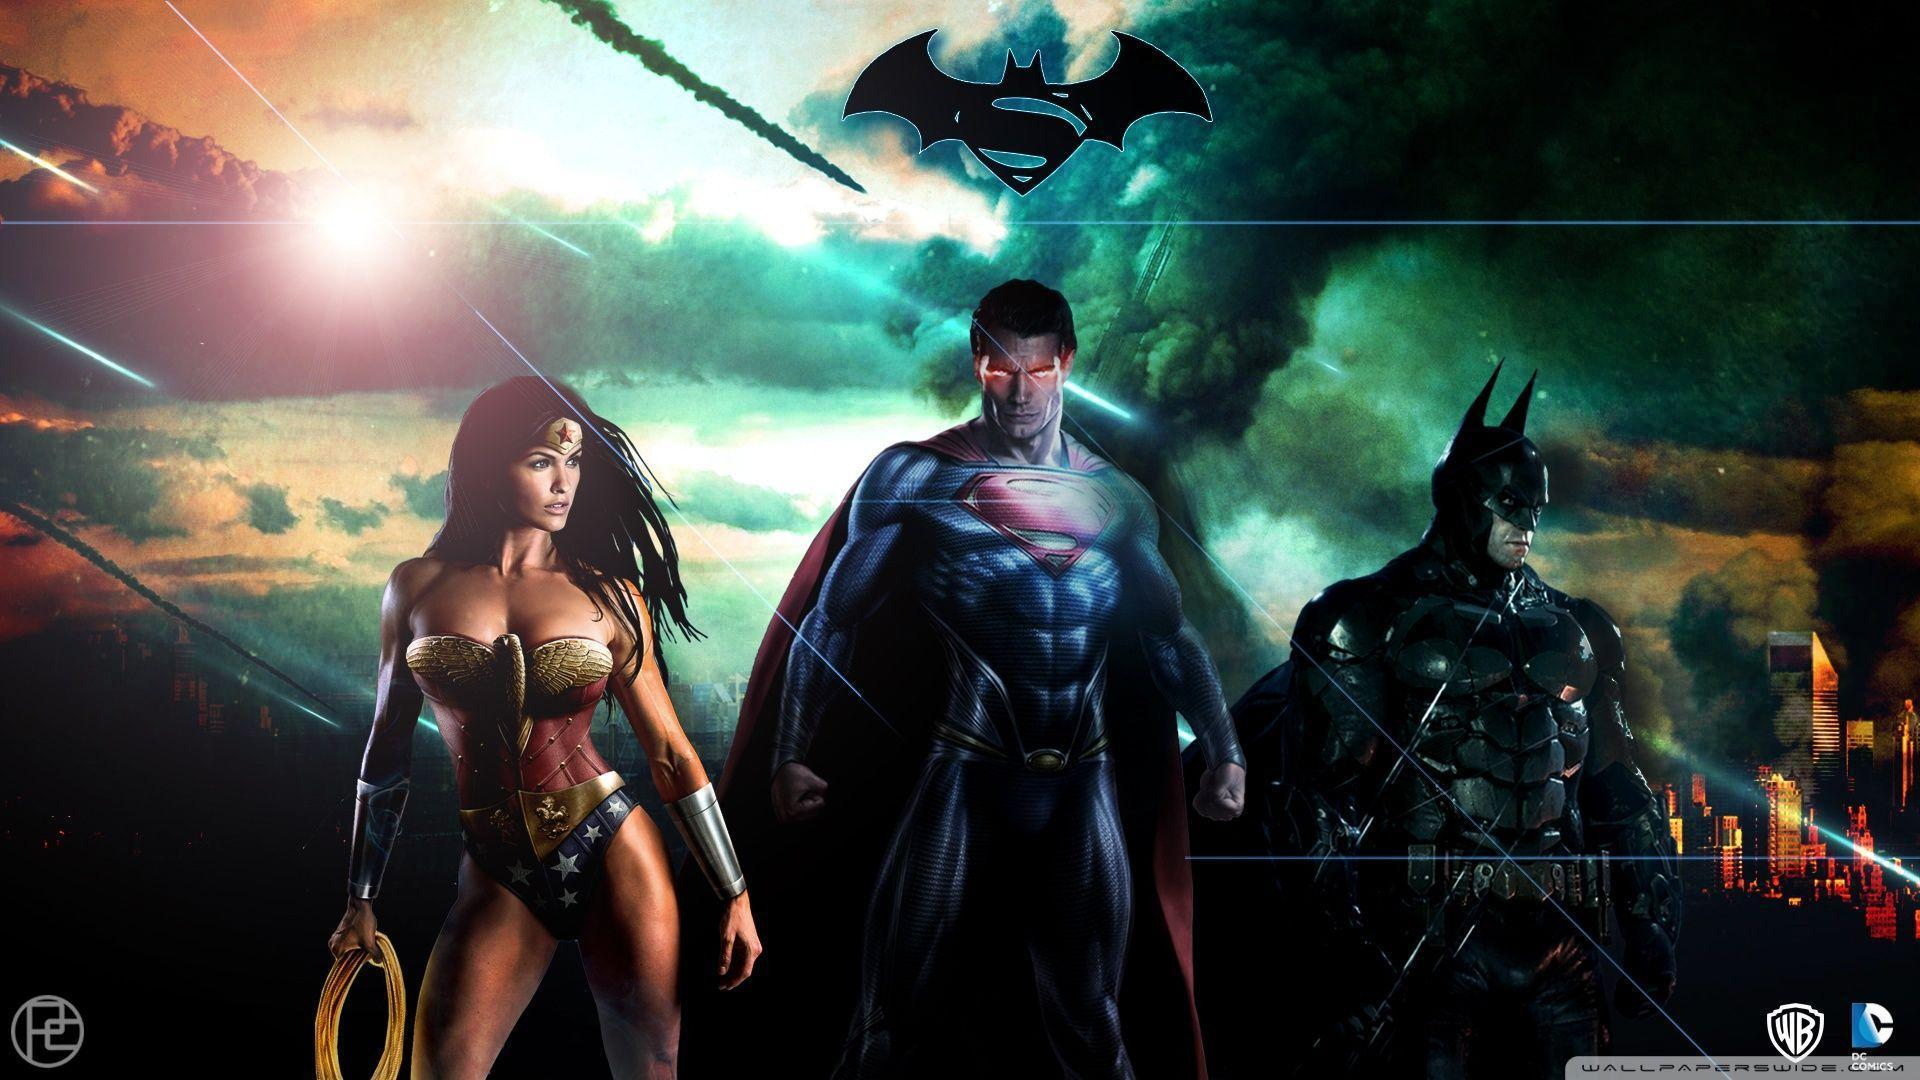 Superman Batman Wonderwoman DC HD desktop wallpaper : High ...